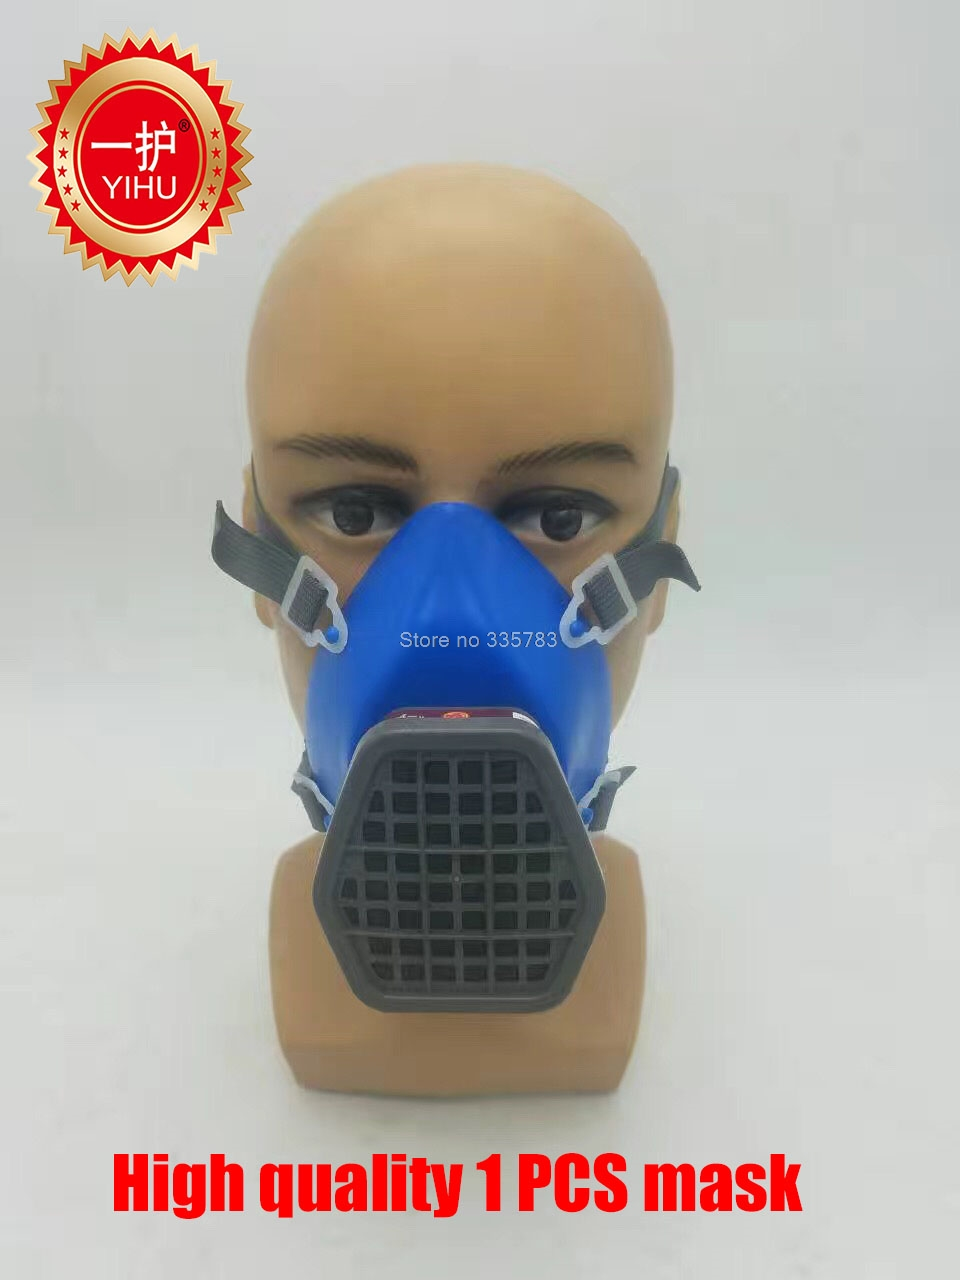 high quality respirator gas mask The newest water chestnut mask with filter Painting pesticide respirator face mask 3m 7502 mask 2097 filter genuine high quality respirator face mask painting graffiti polished respirator gas mask